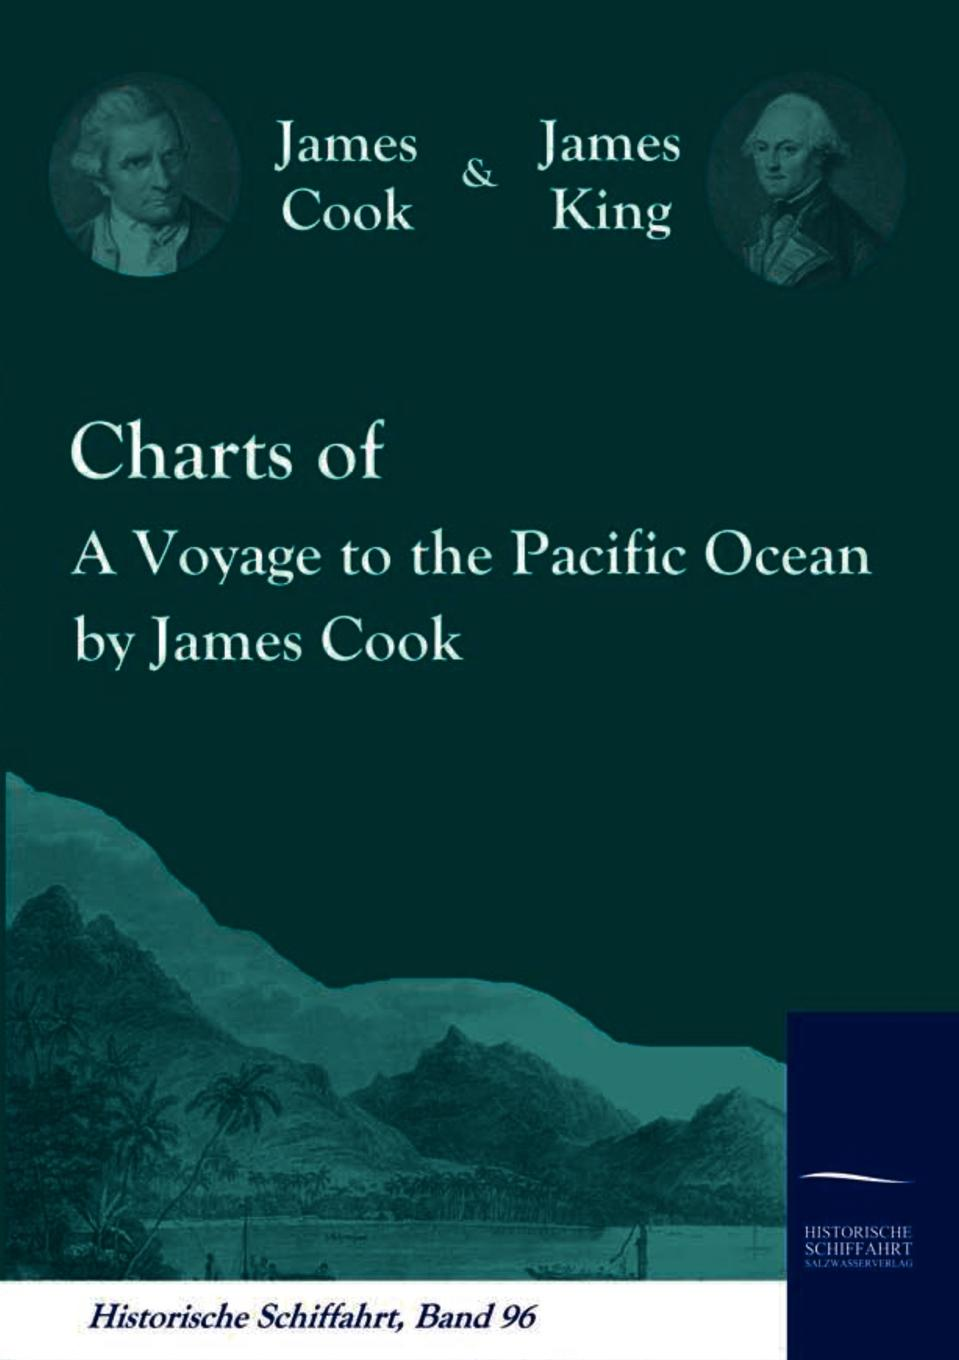 James Cook, James King Charts of A Voyage to the Pacific Ocean by James Cook